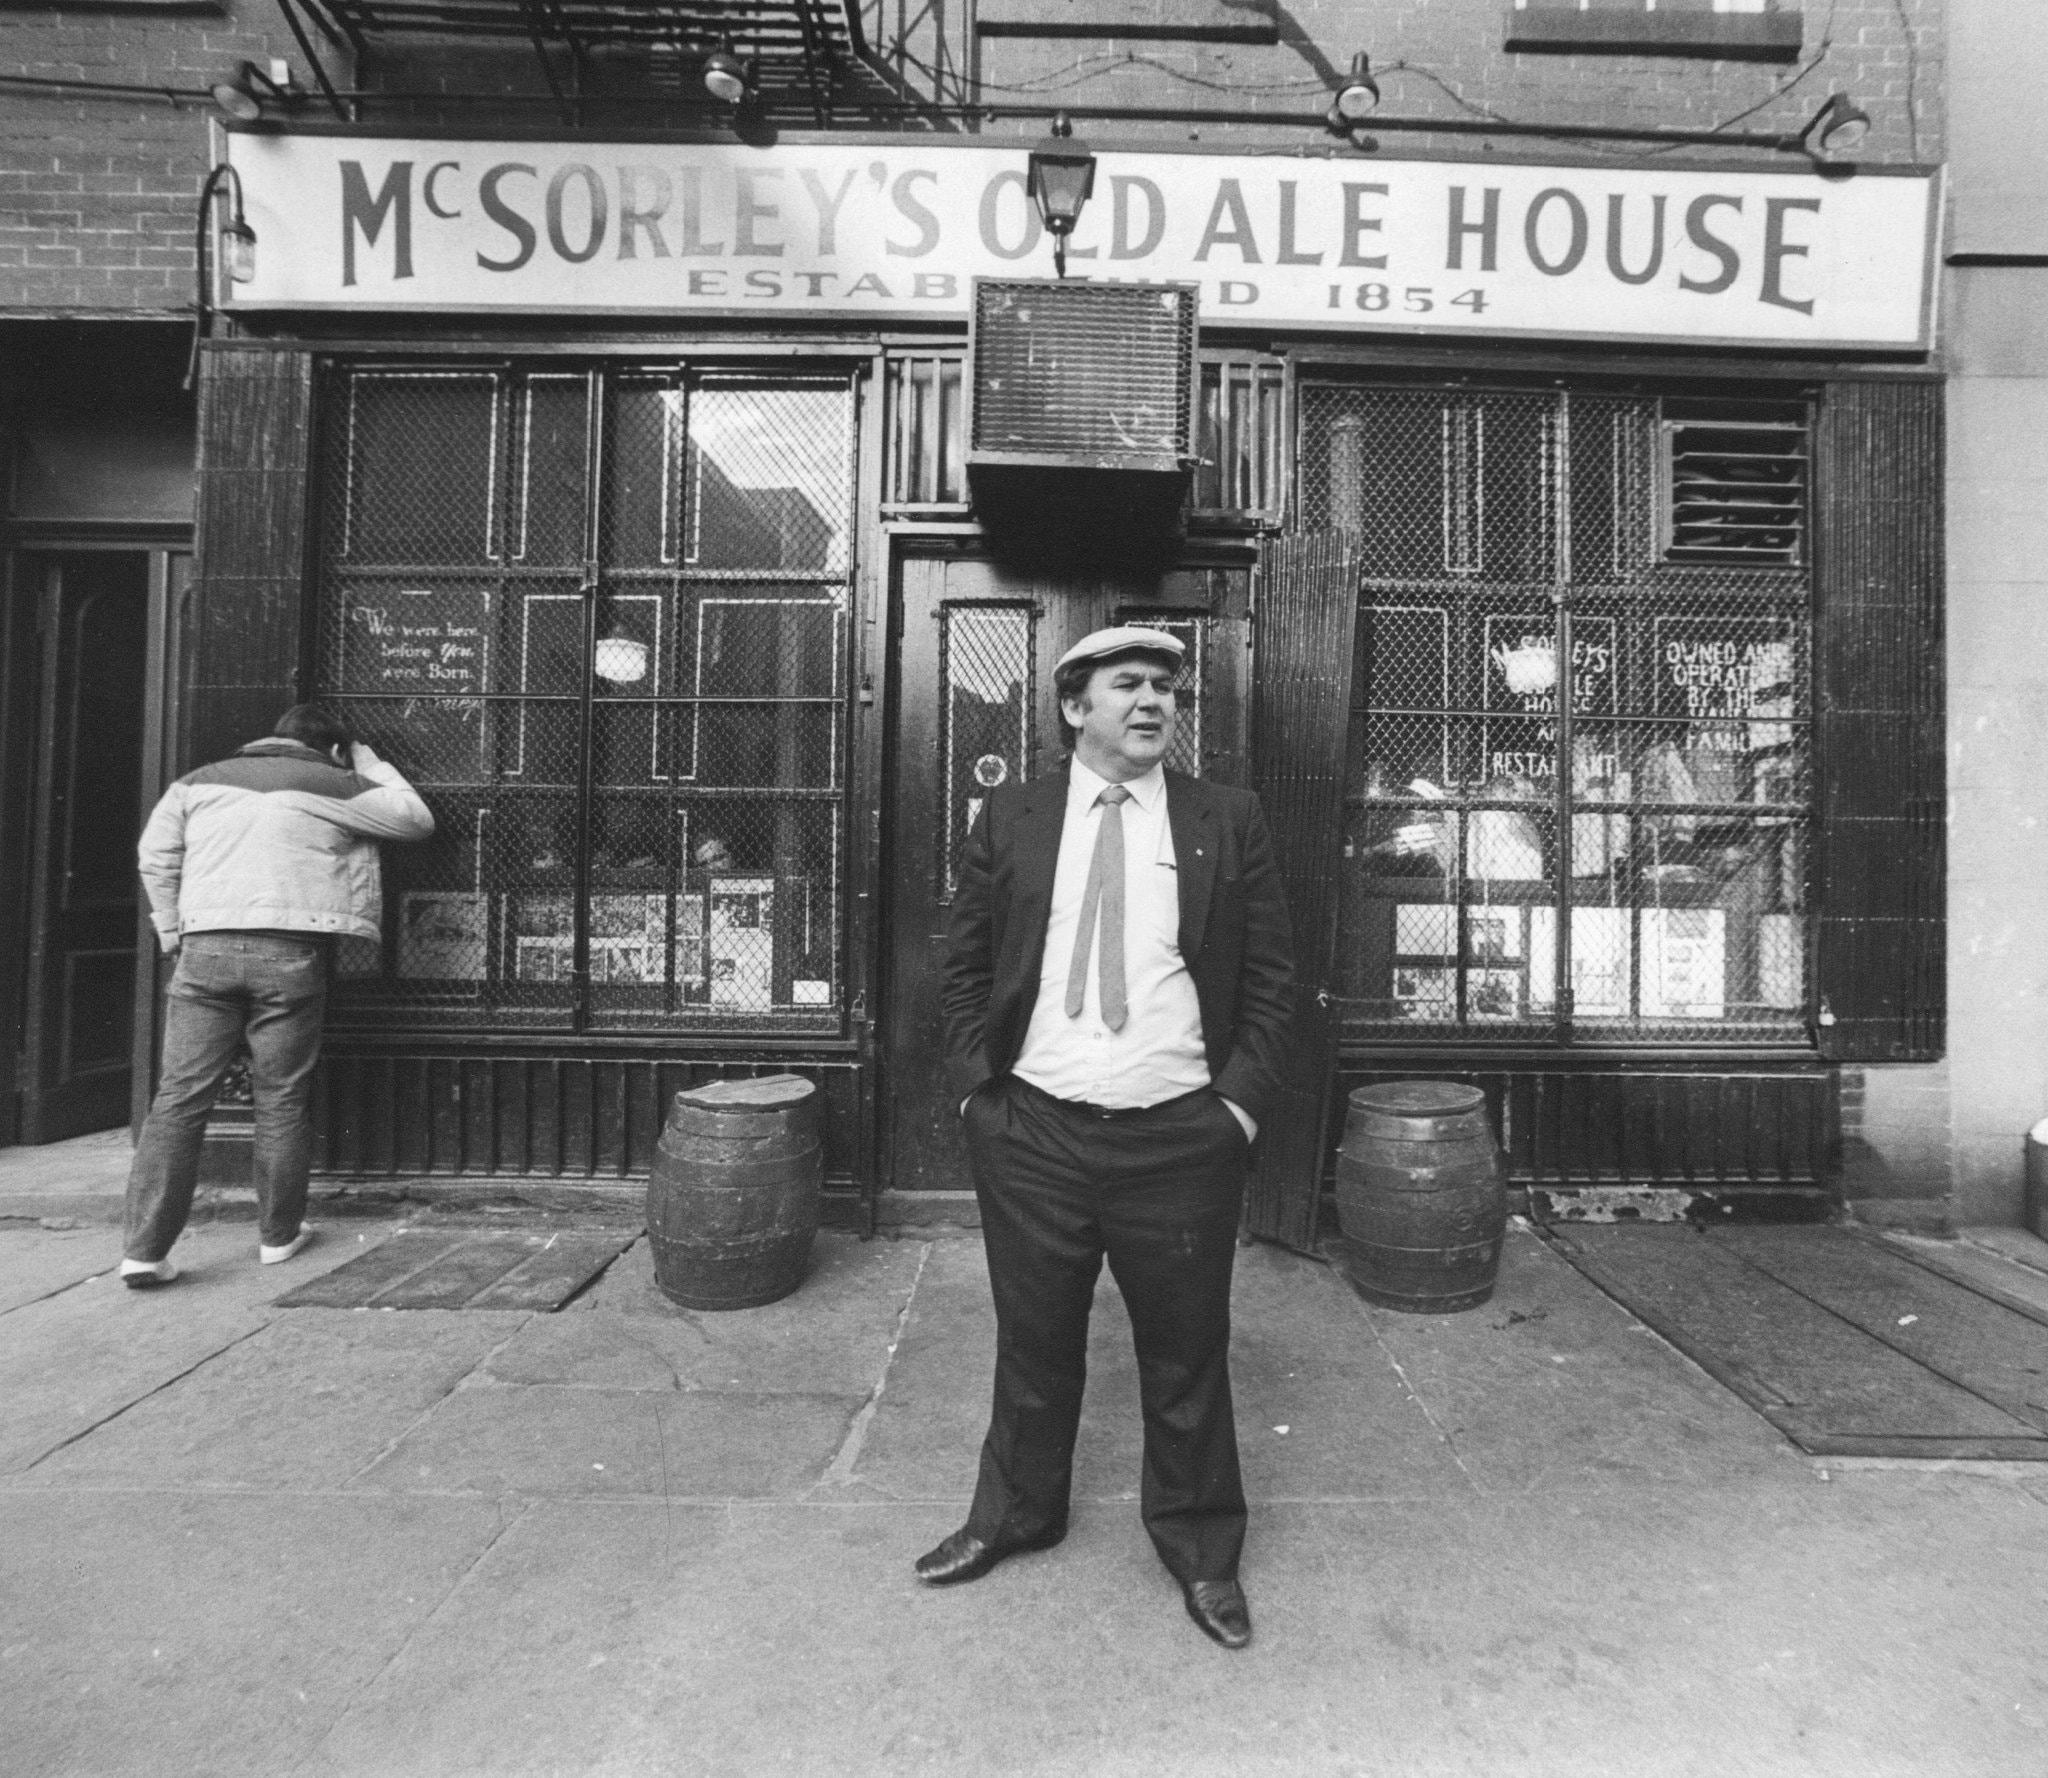 Legendary: Matty Maher, owner of McSorley's Old Ale House in Manhattan in 1985. Photo: Getty Images